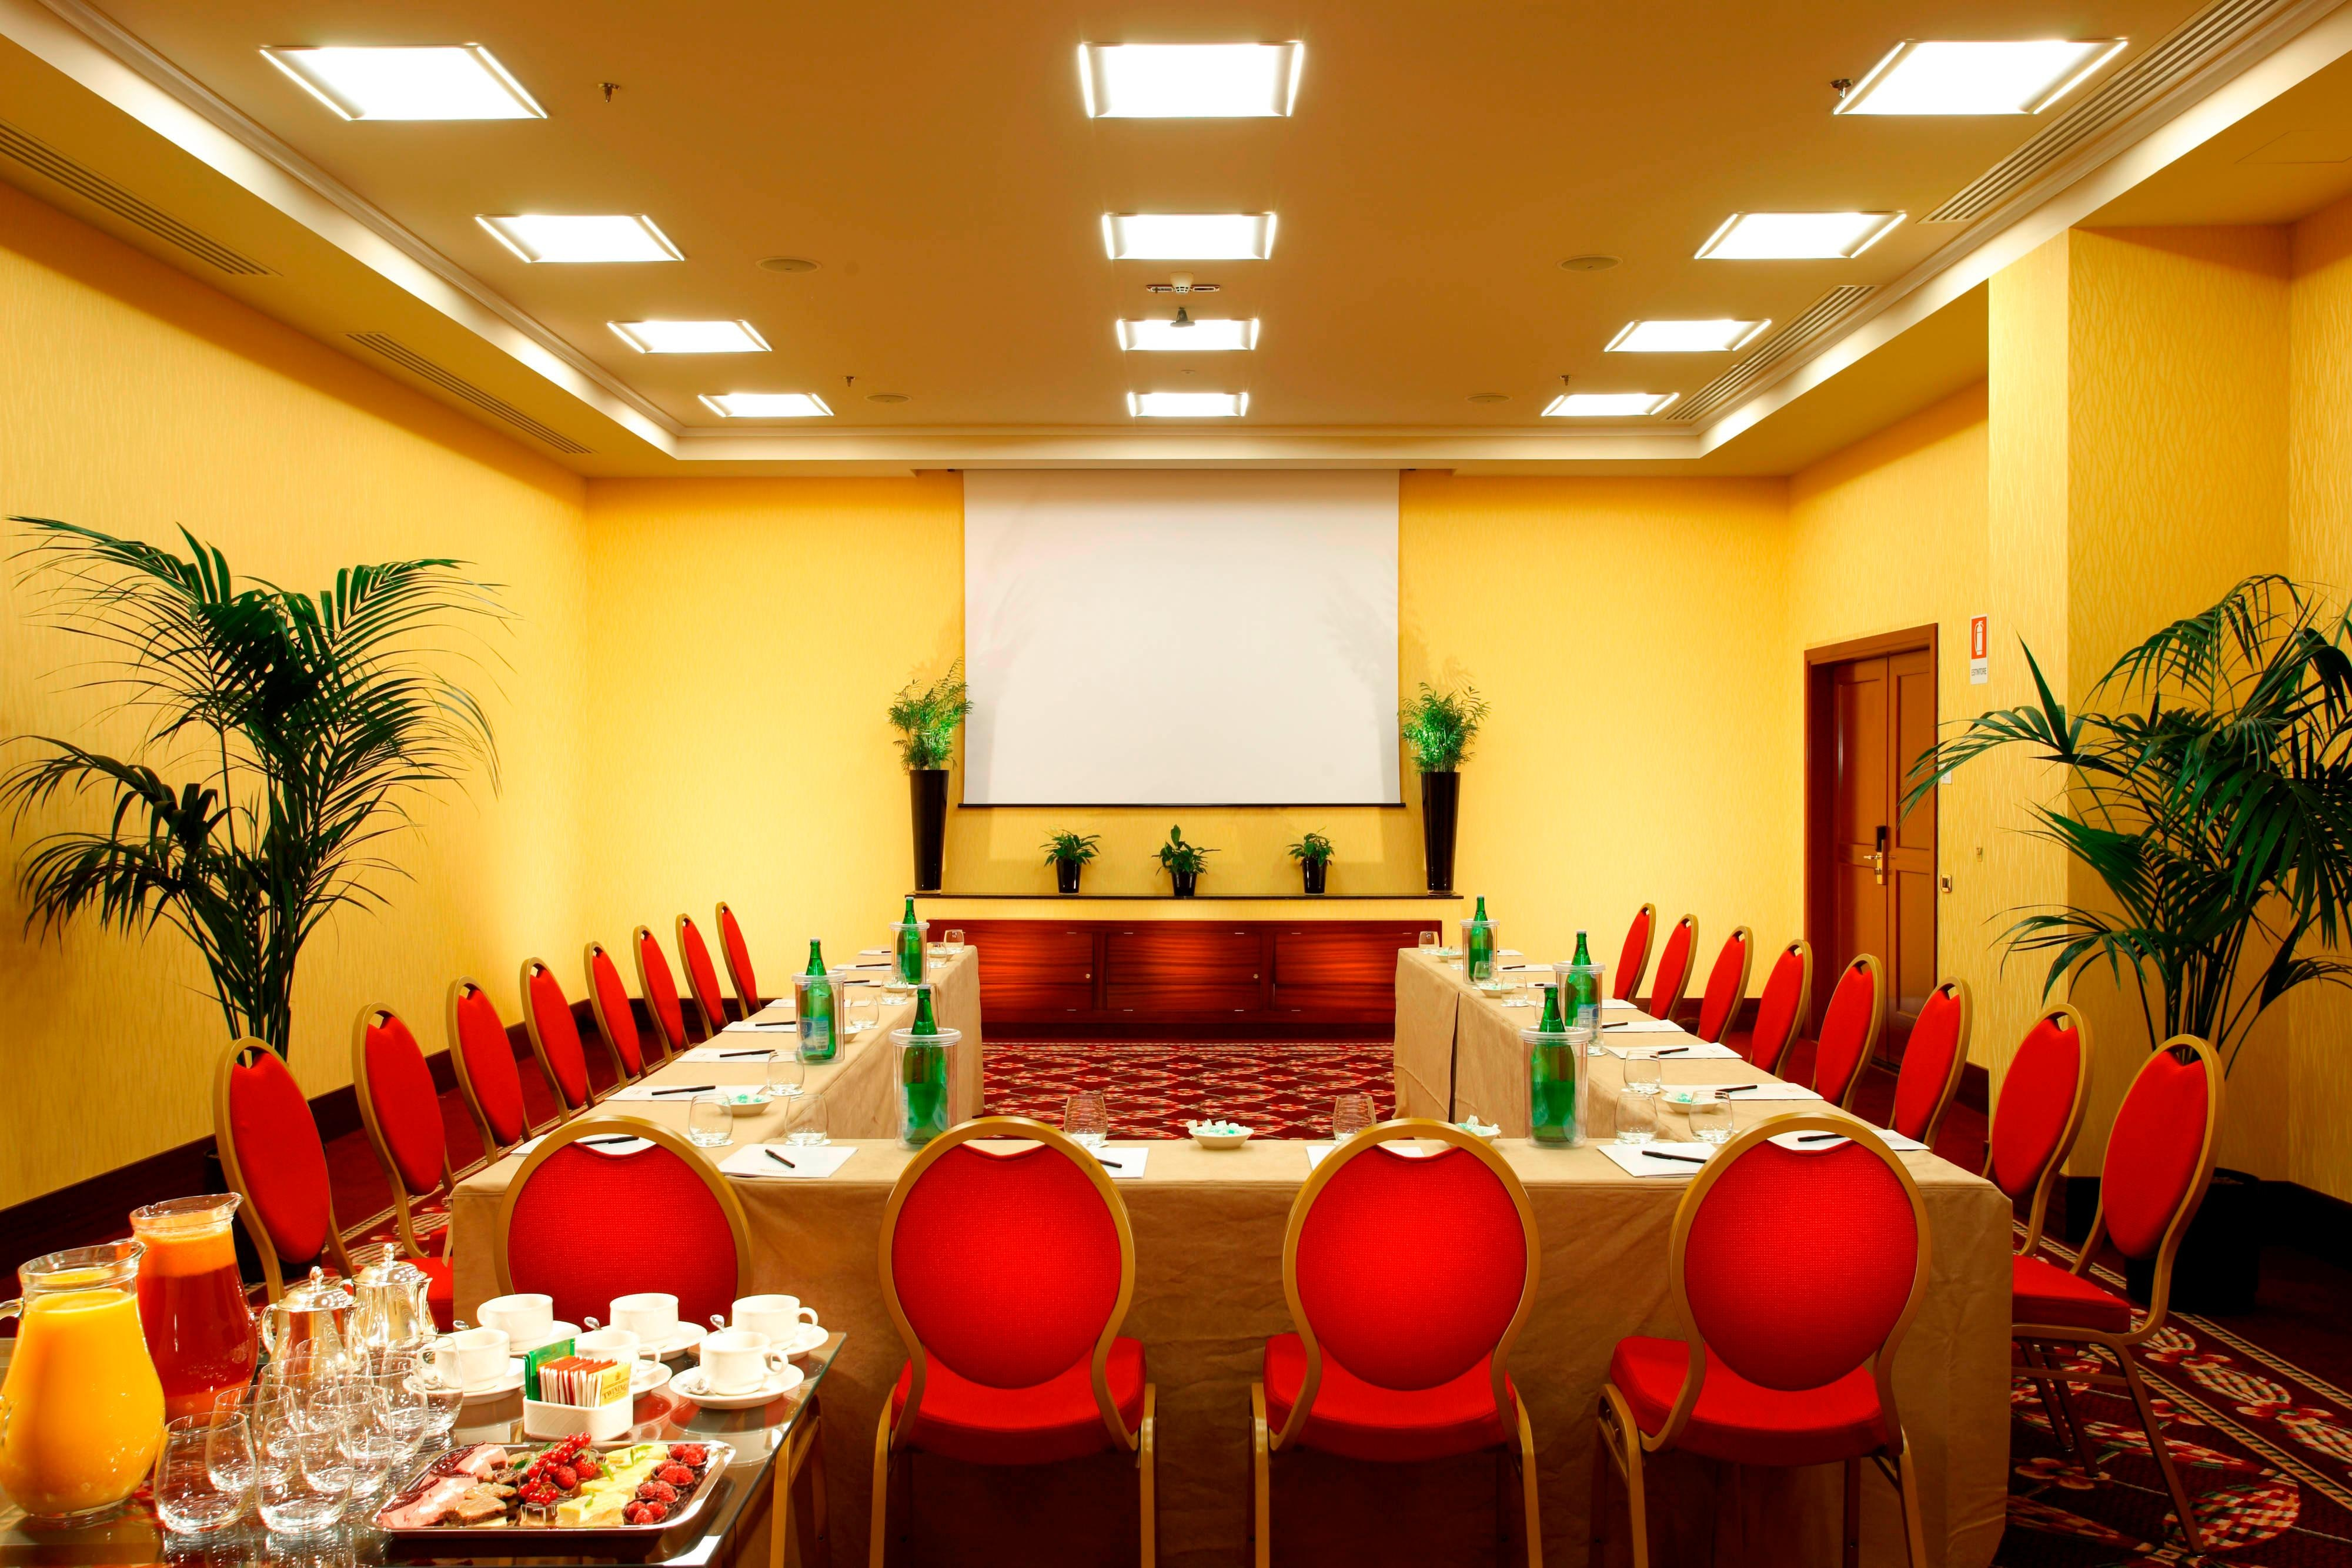 Tintoretto meeting rooms in Rome, Italy